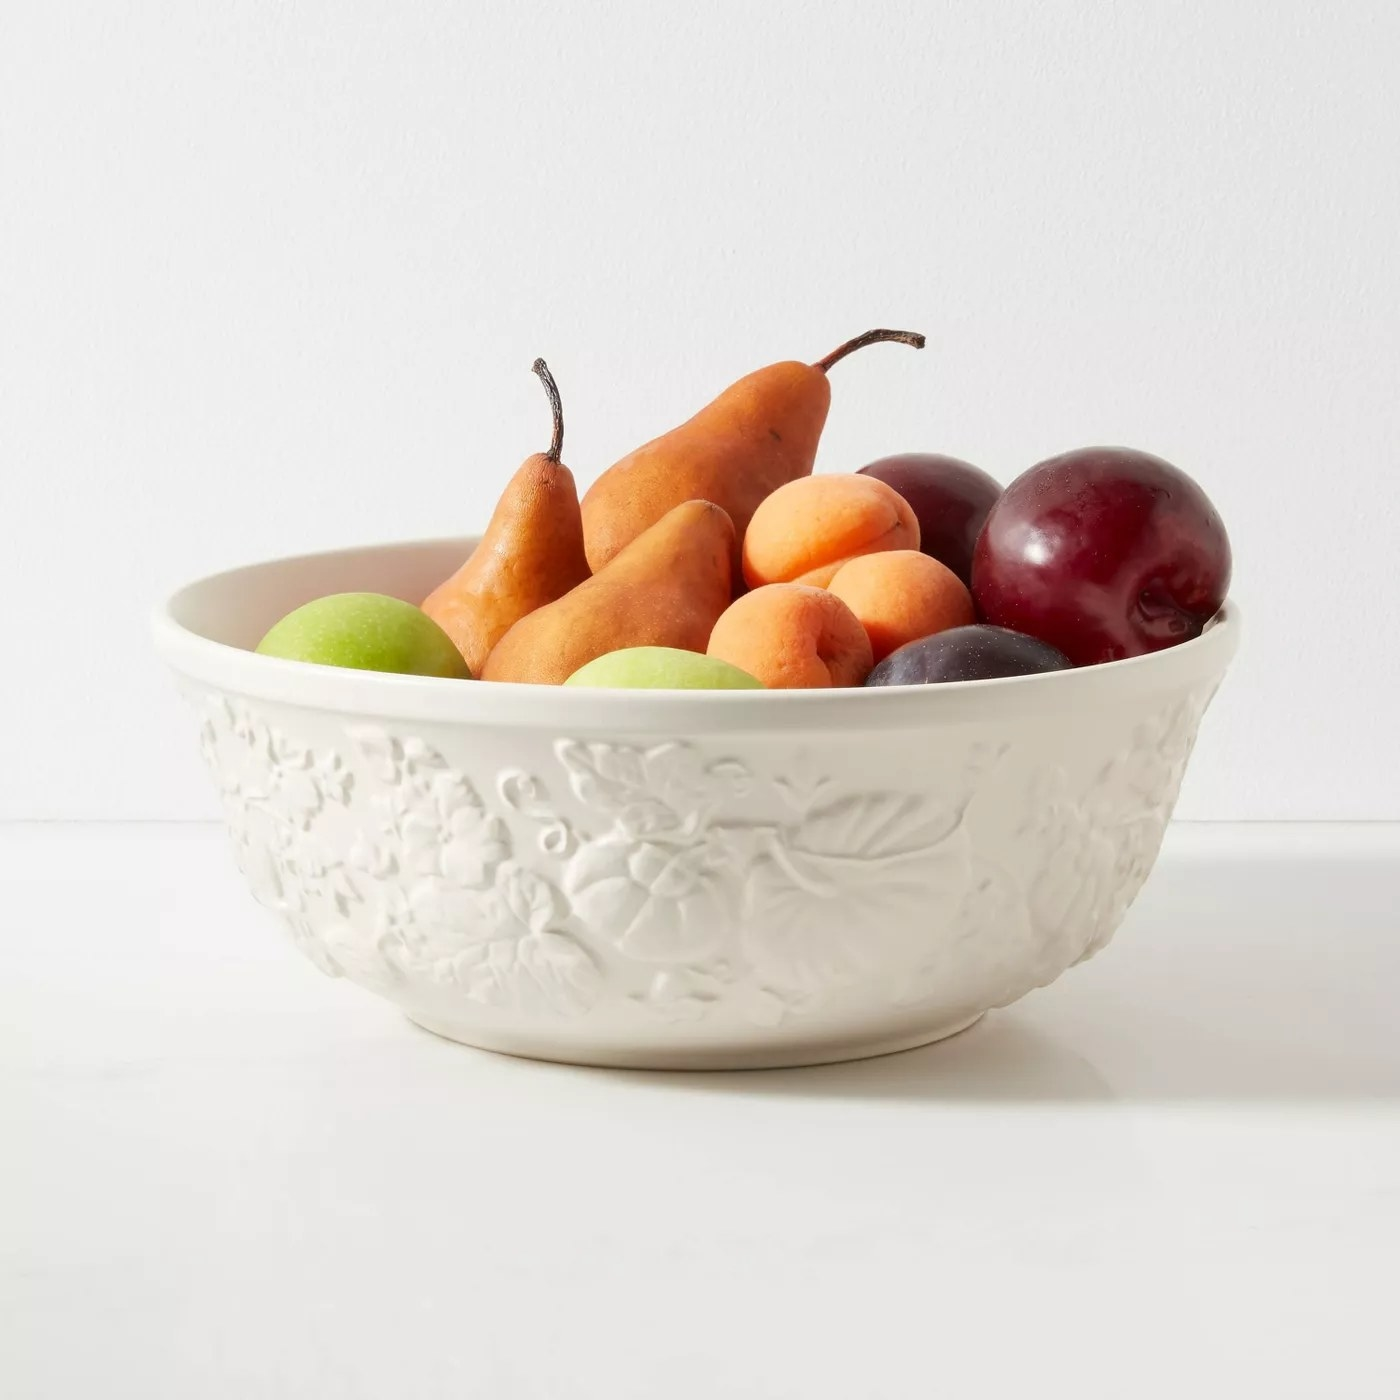 The bowl filled with fruit